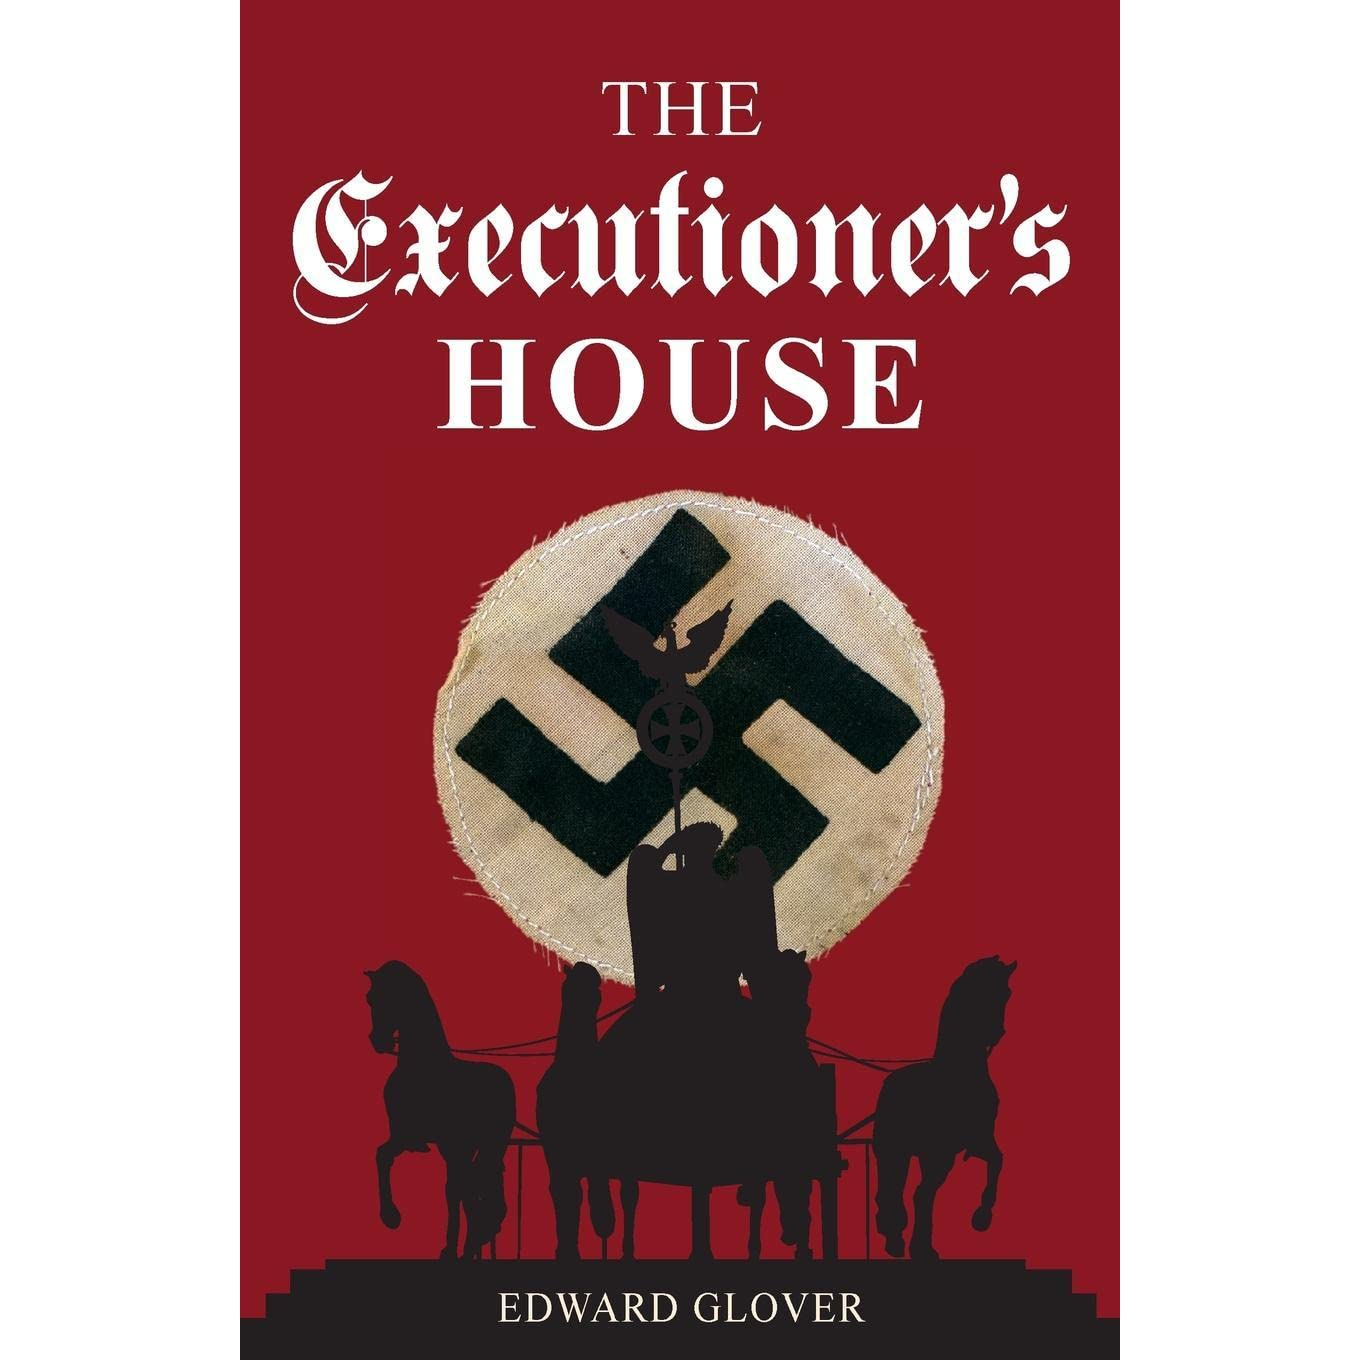 The Executioners House